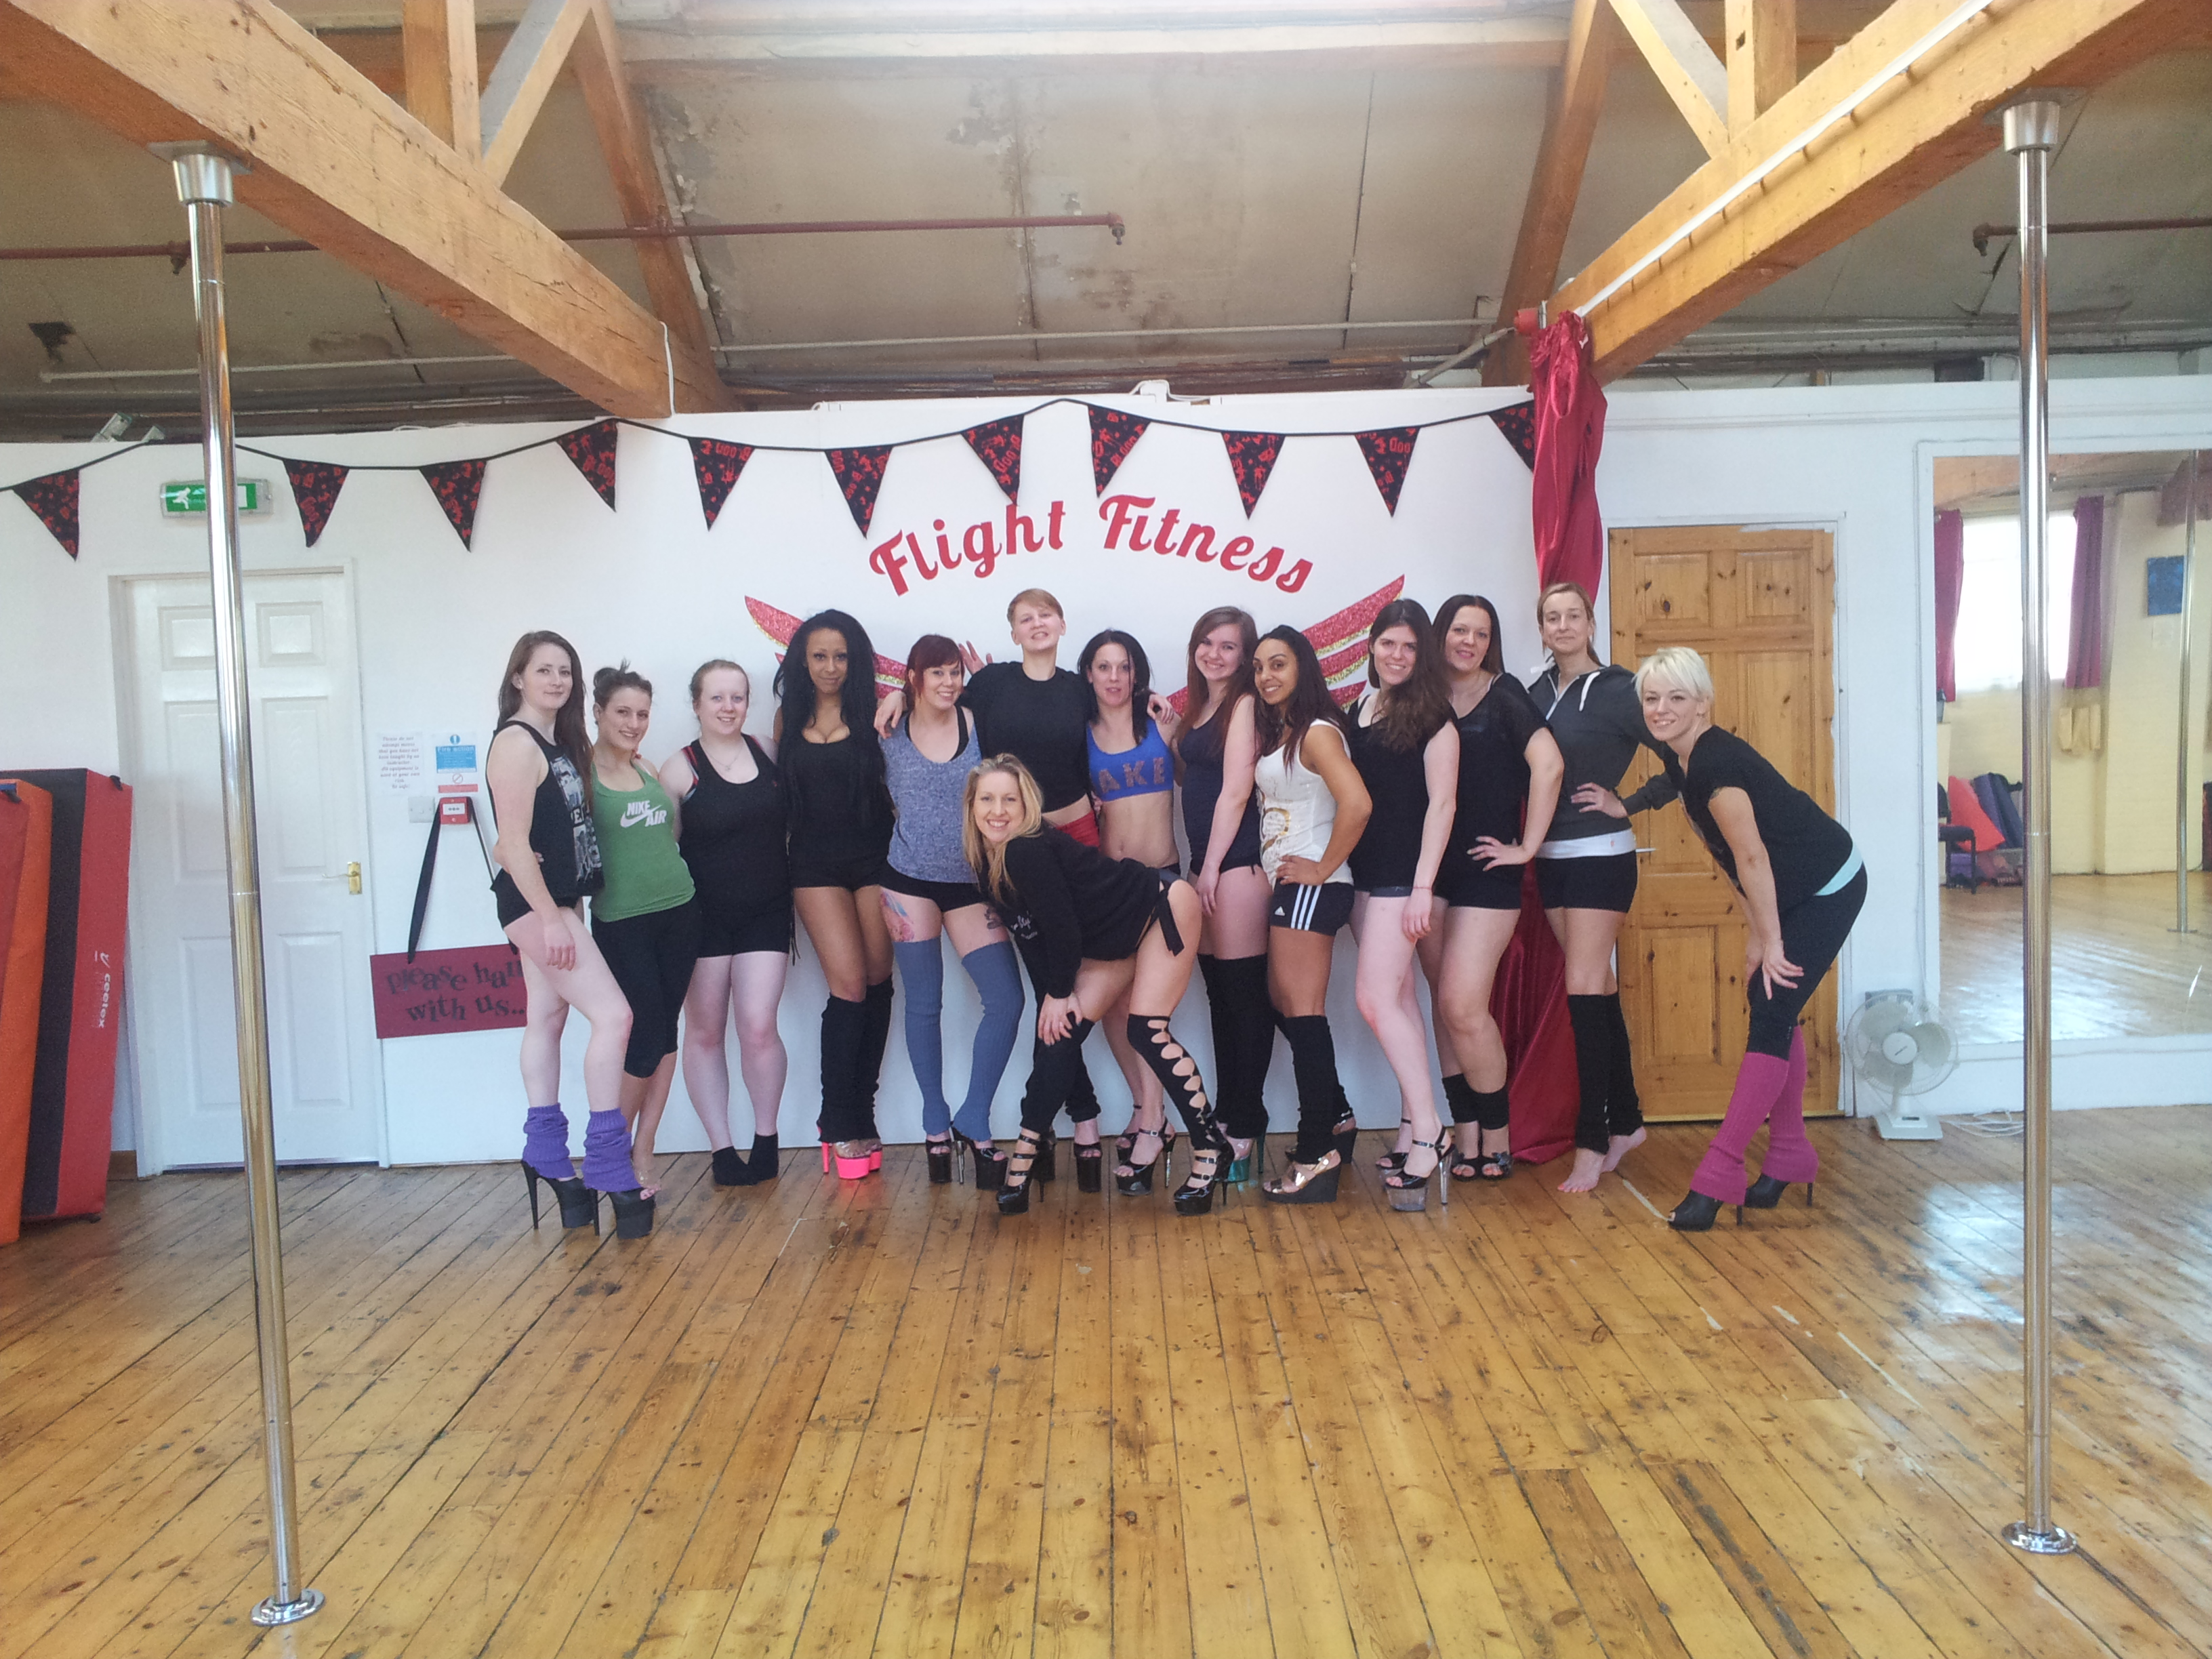 Jamie Taylor Masterclasses flight fitness leicester learn to pole dance leicester